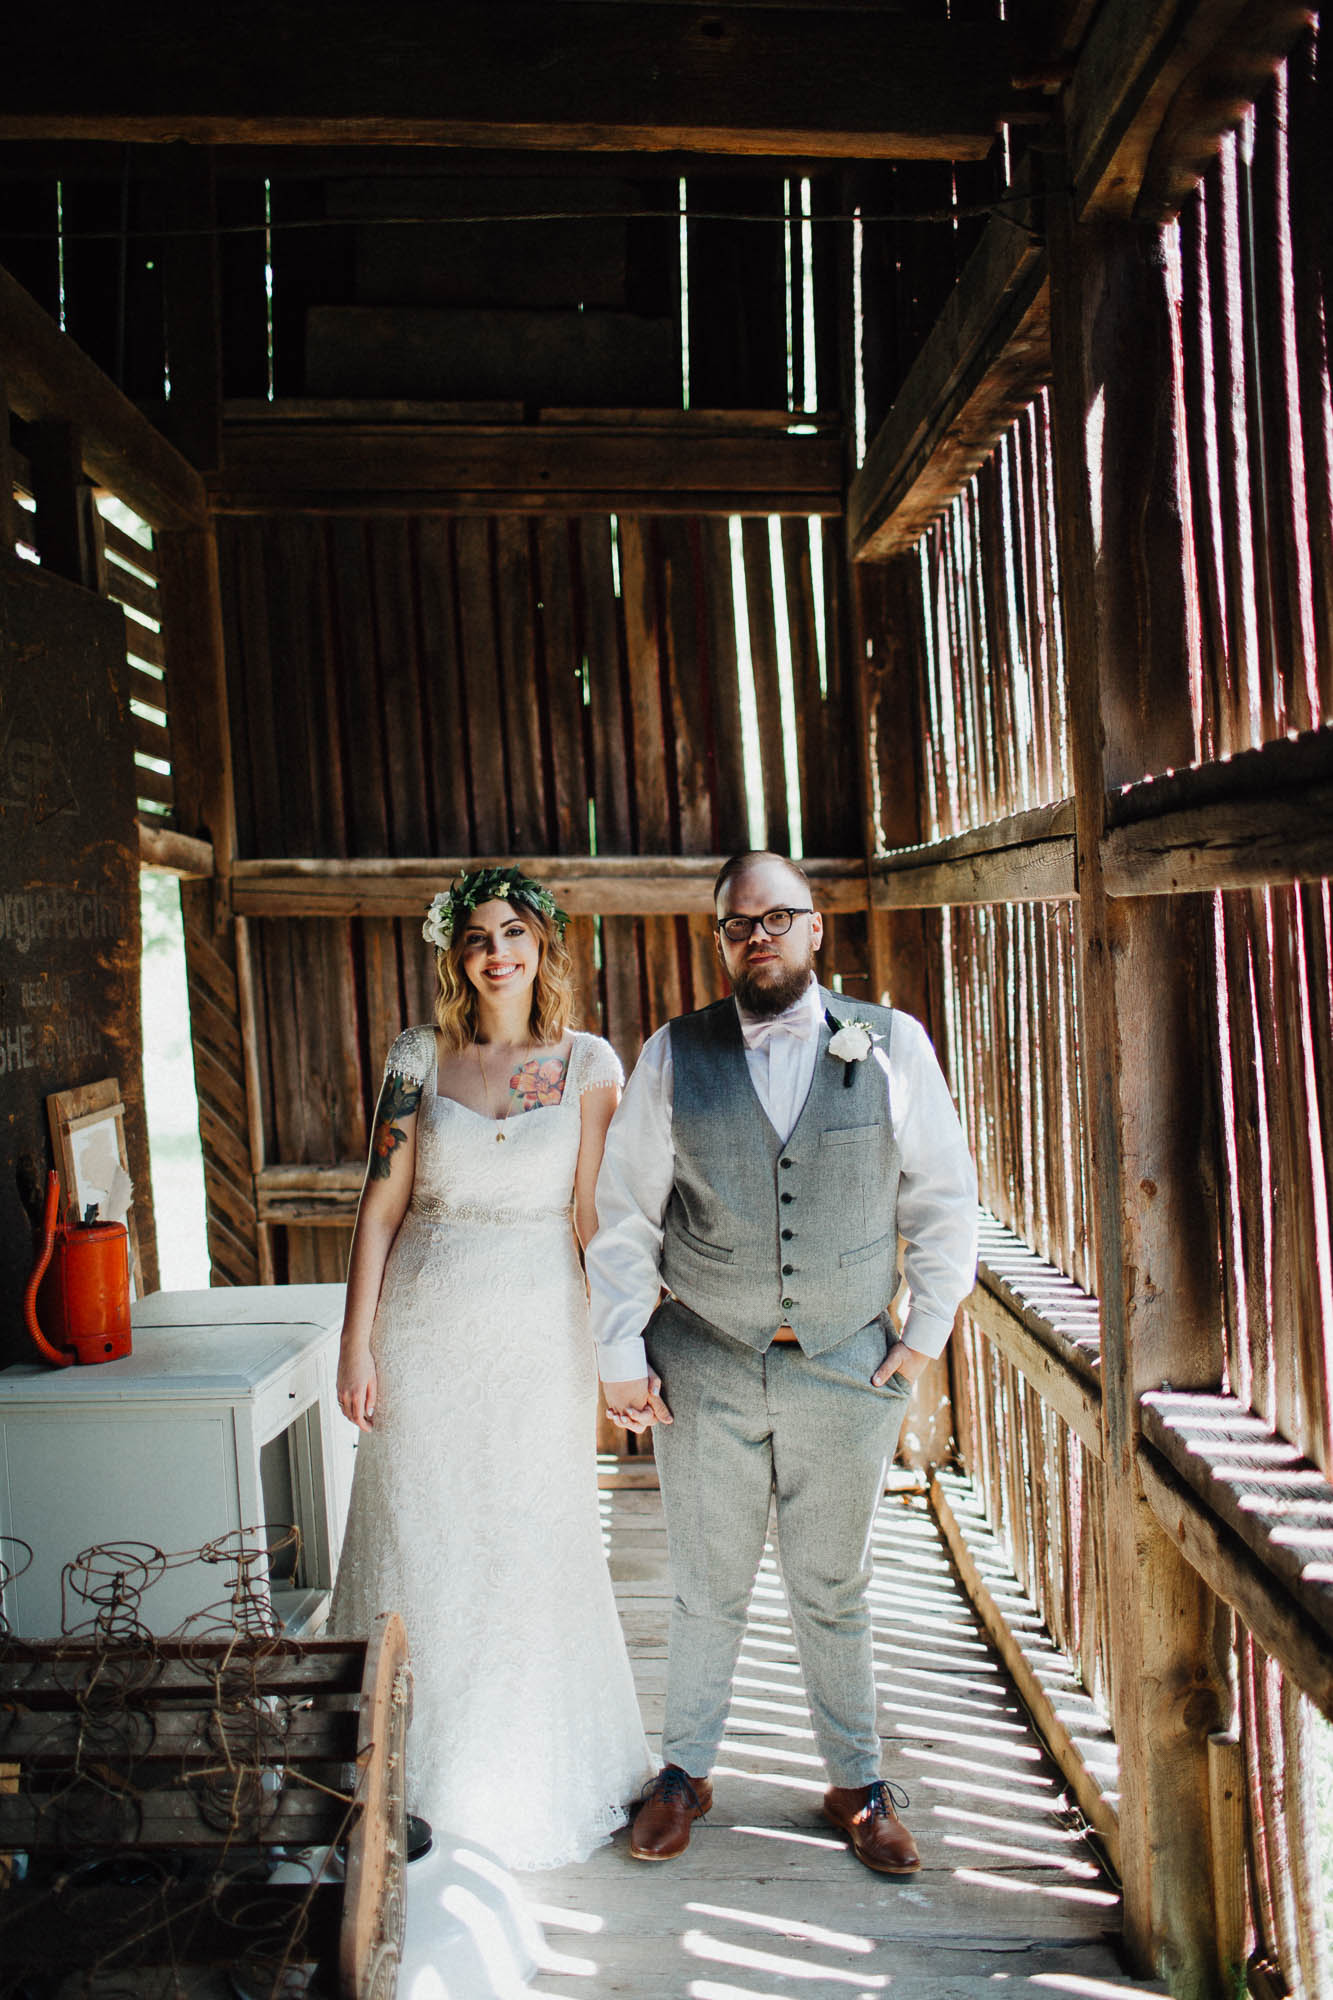 Jessi-Jake-The-Brauns-Ohio-Barn-B&B-Wedding-042@2x.jpg